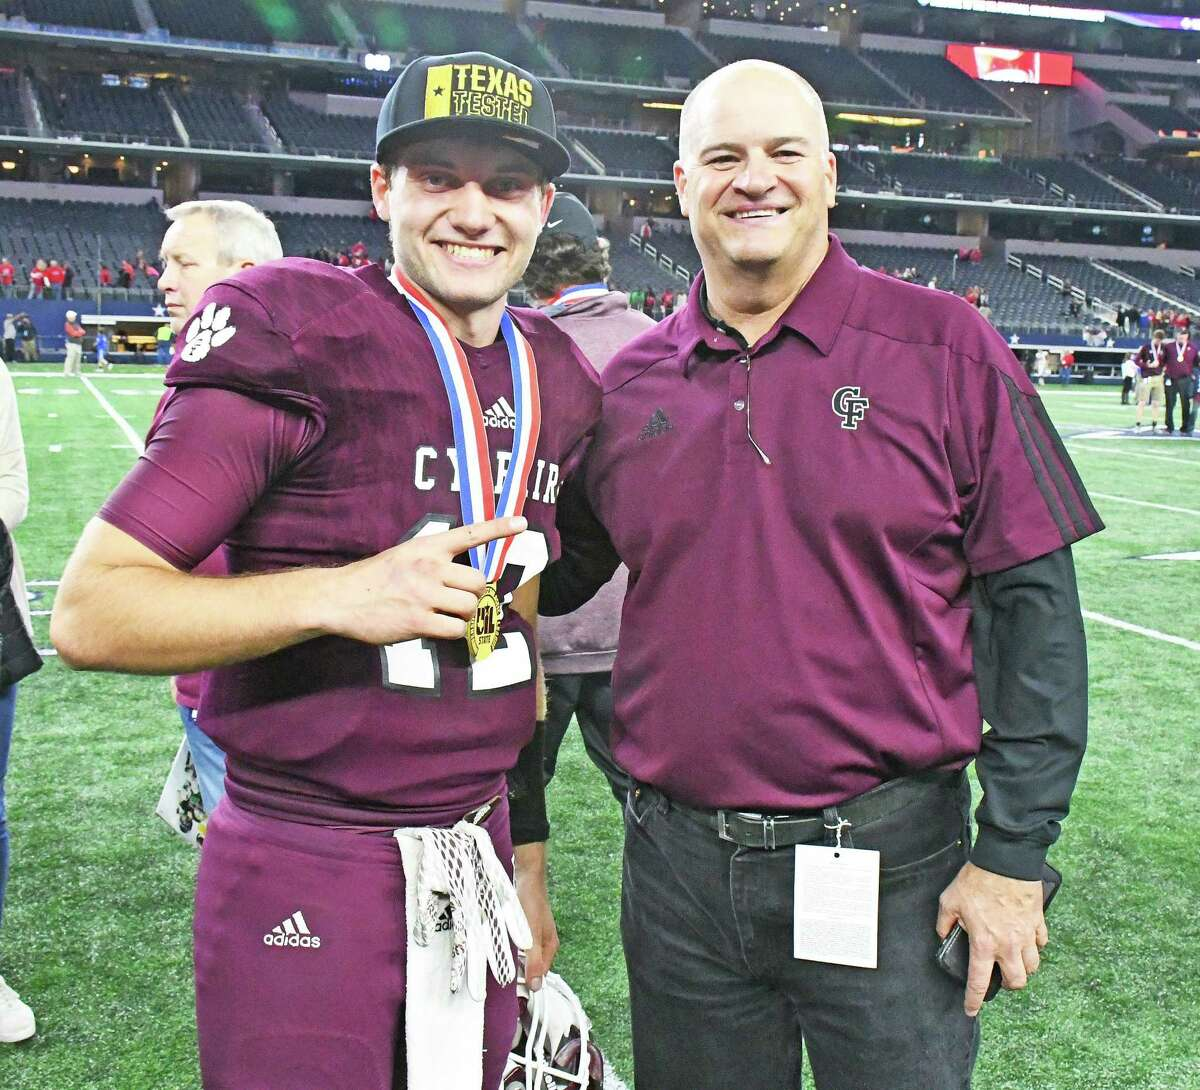 It's no secret that Cy-Fair ISD Superintendent Mark Henry is a football fan and he was one of the first on the football field to congratulate Cy Fair senior quarterback Cam Arnold on the Bobcats state championship win in the 2017 State 6A Division 2 win over Midway.